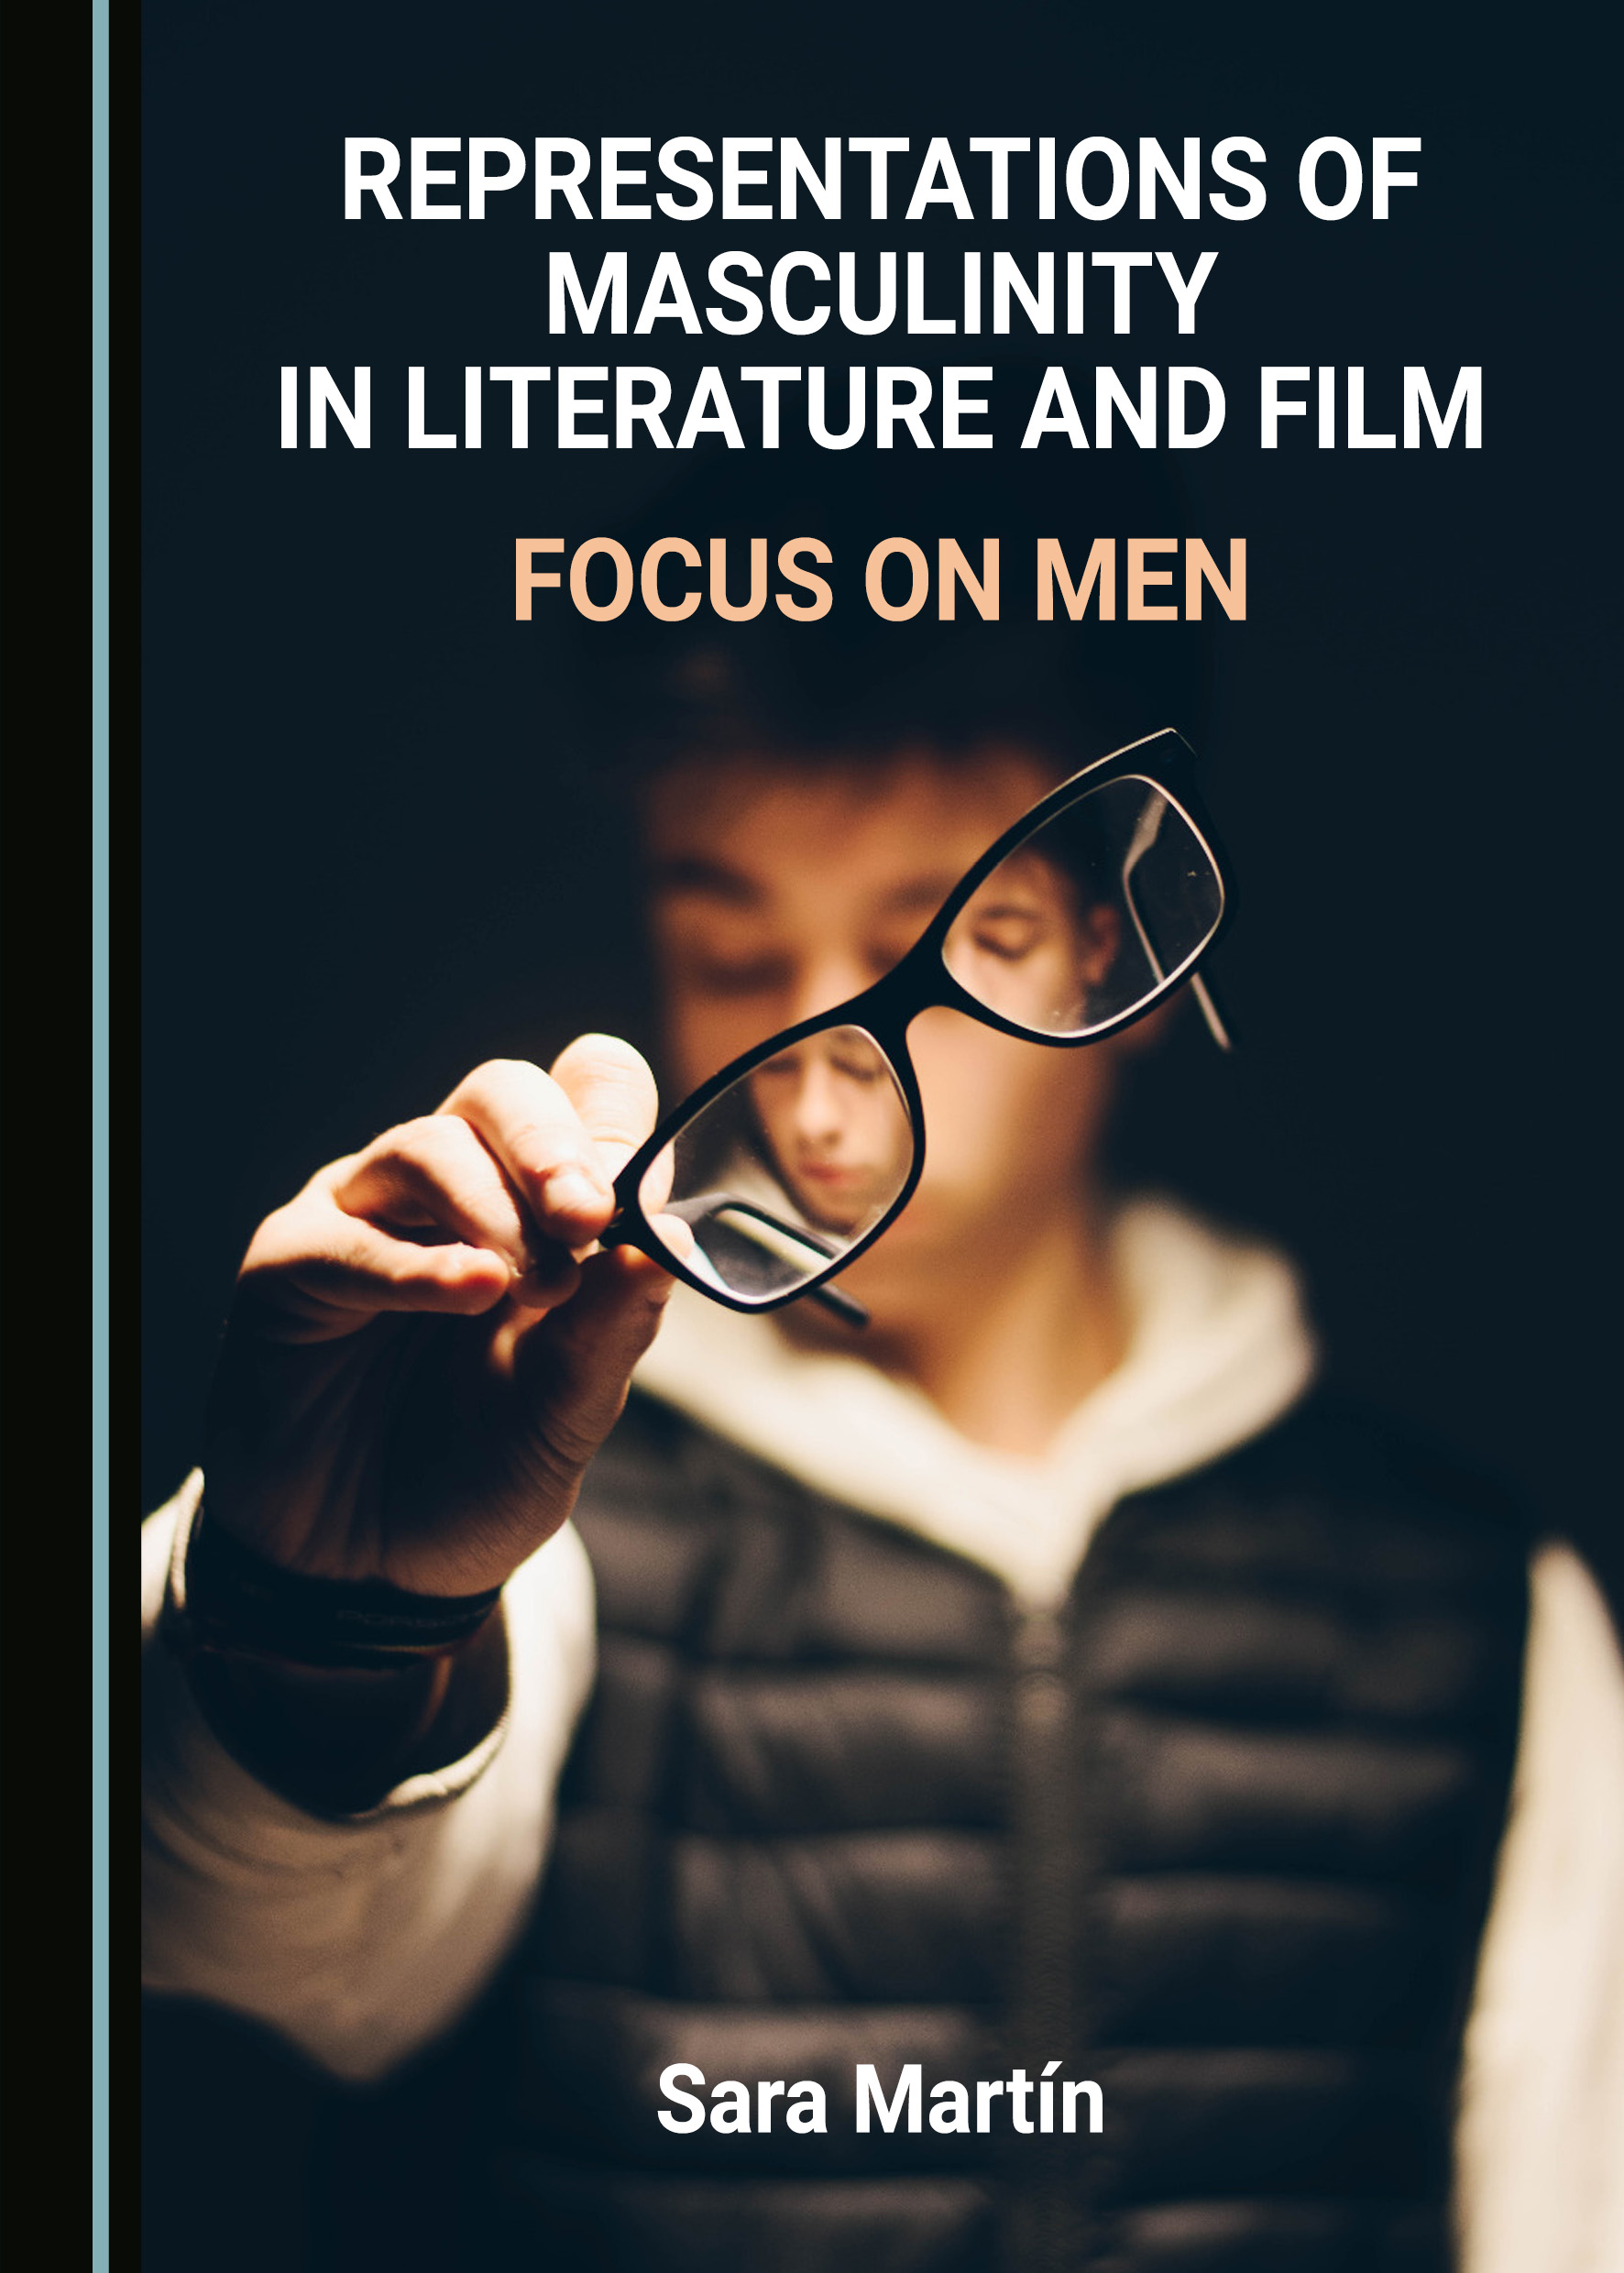 Representations of Masculinity in Literature and Film: Focus on Men